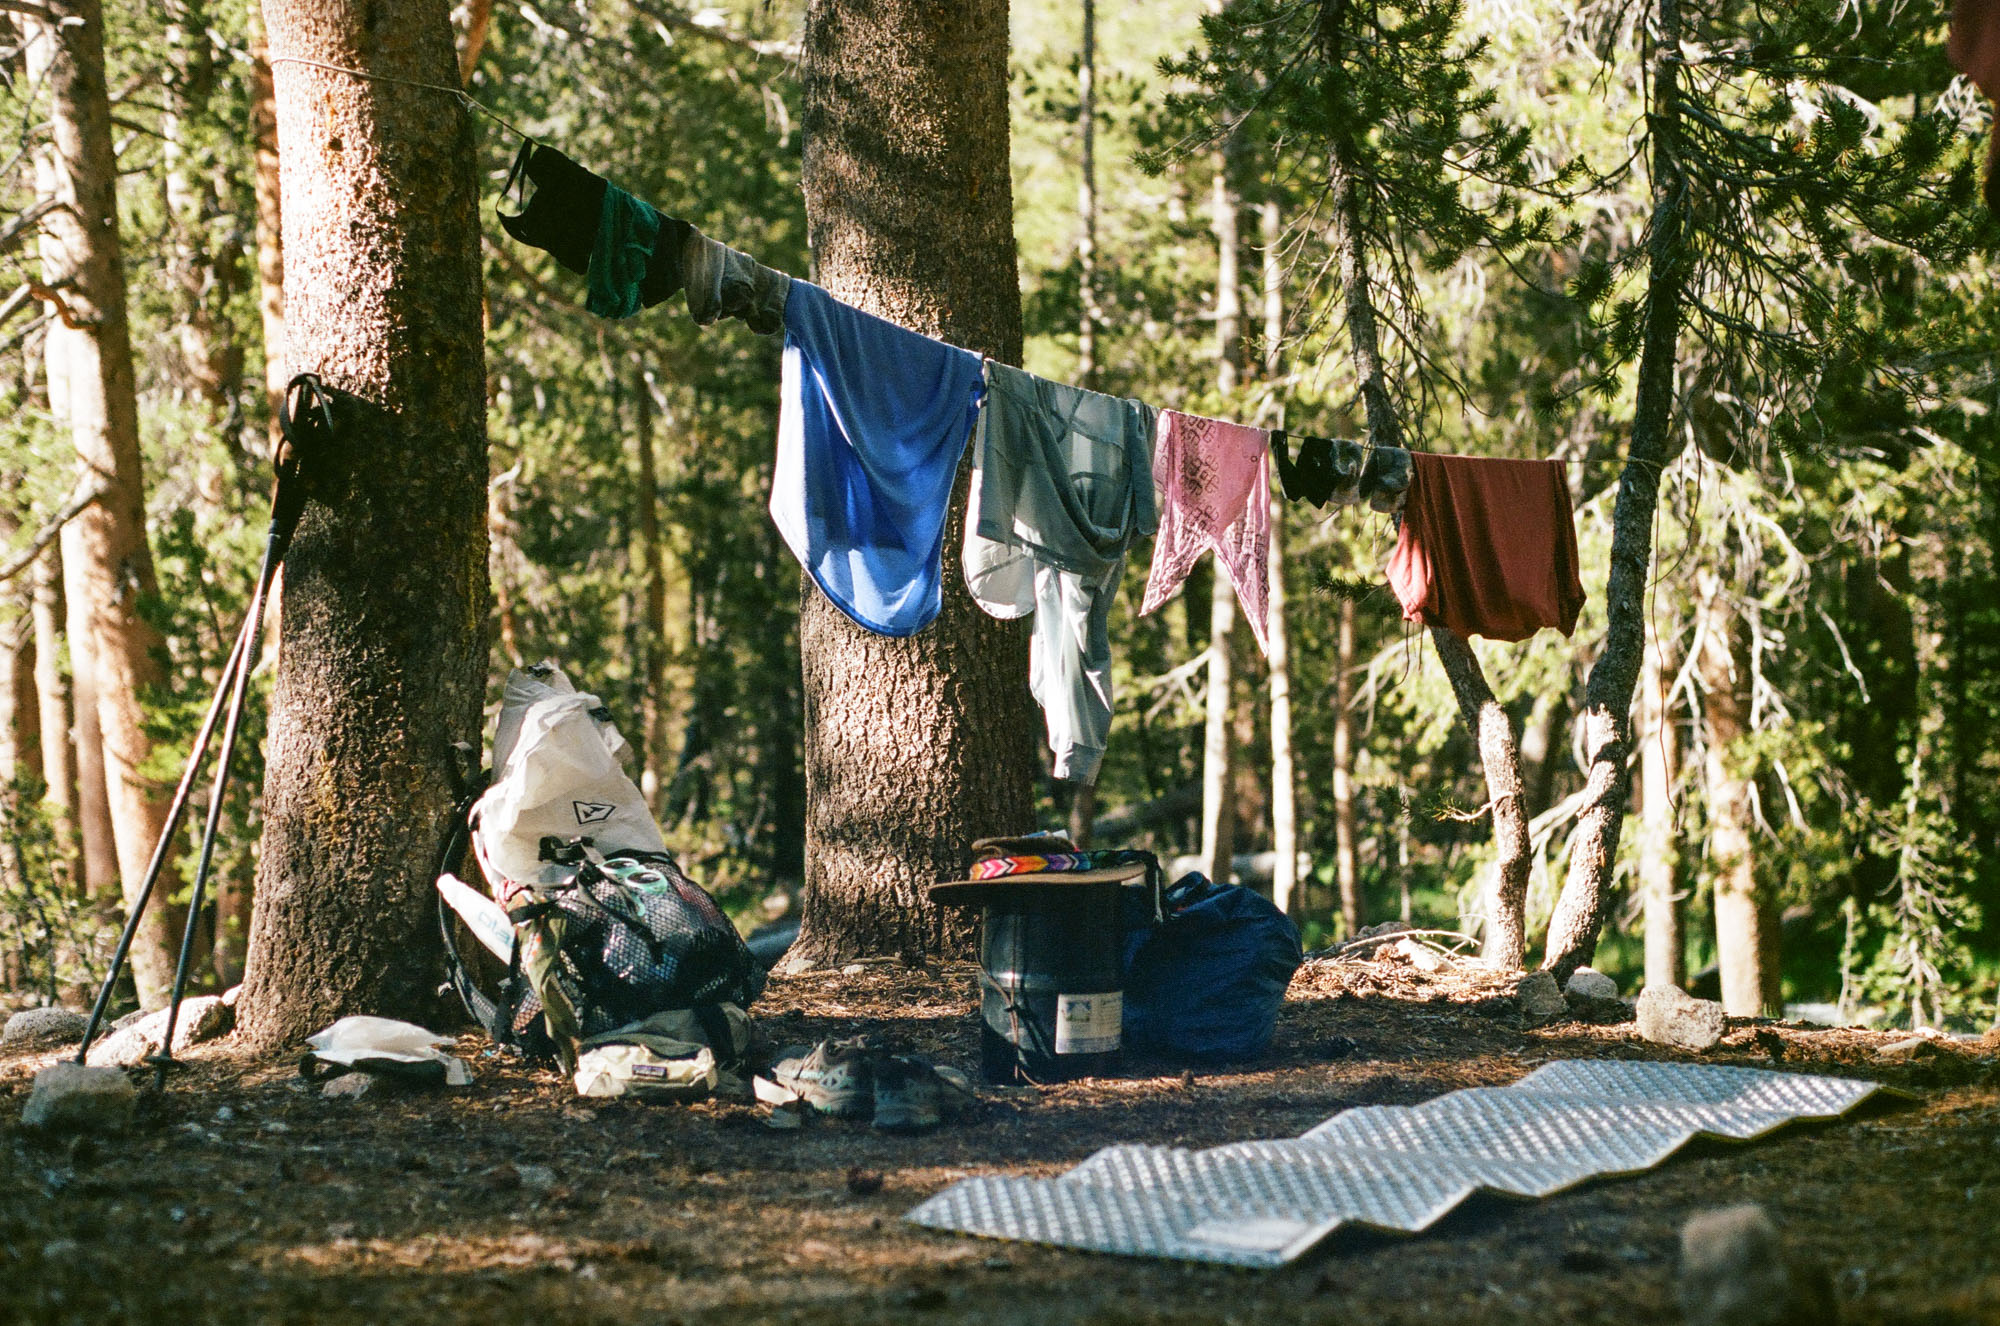 Laundry at camp, 35mm film